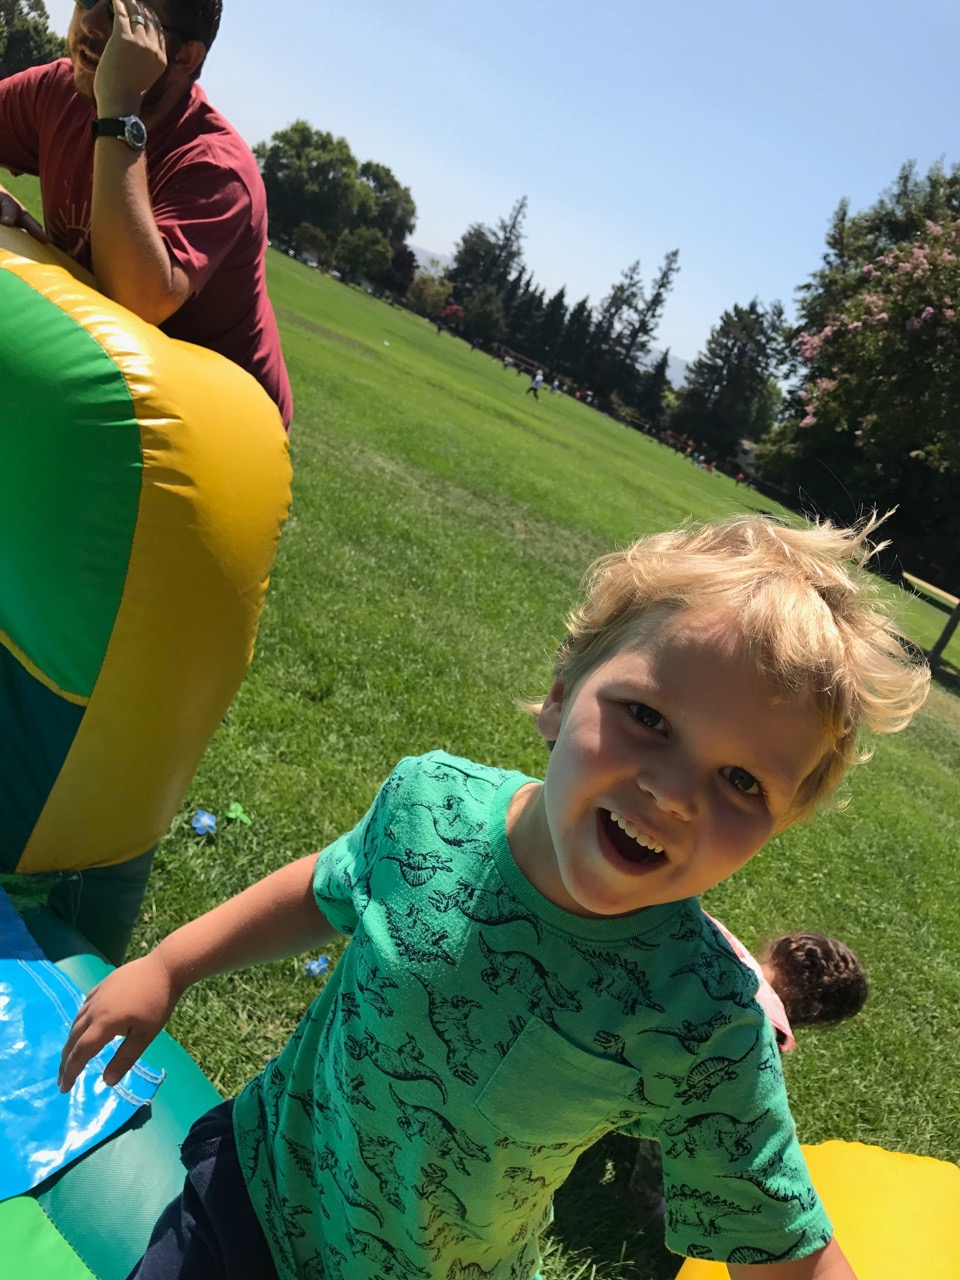 Bounce house fun (August)